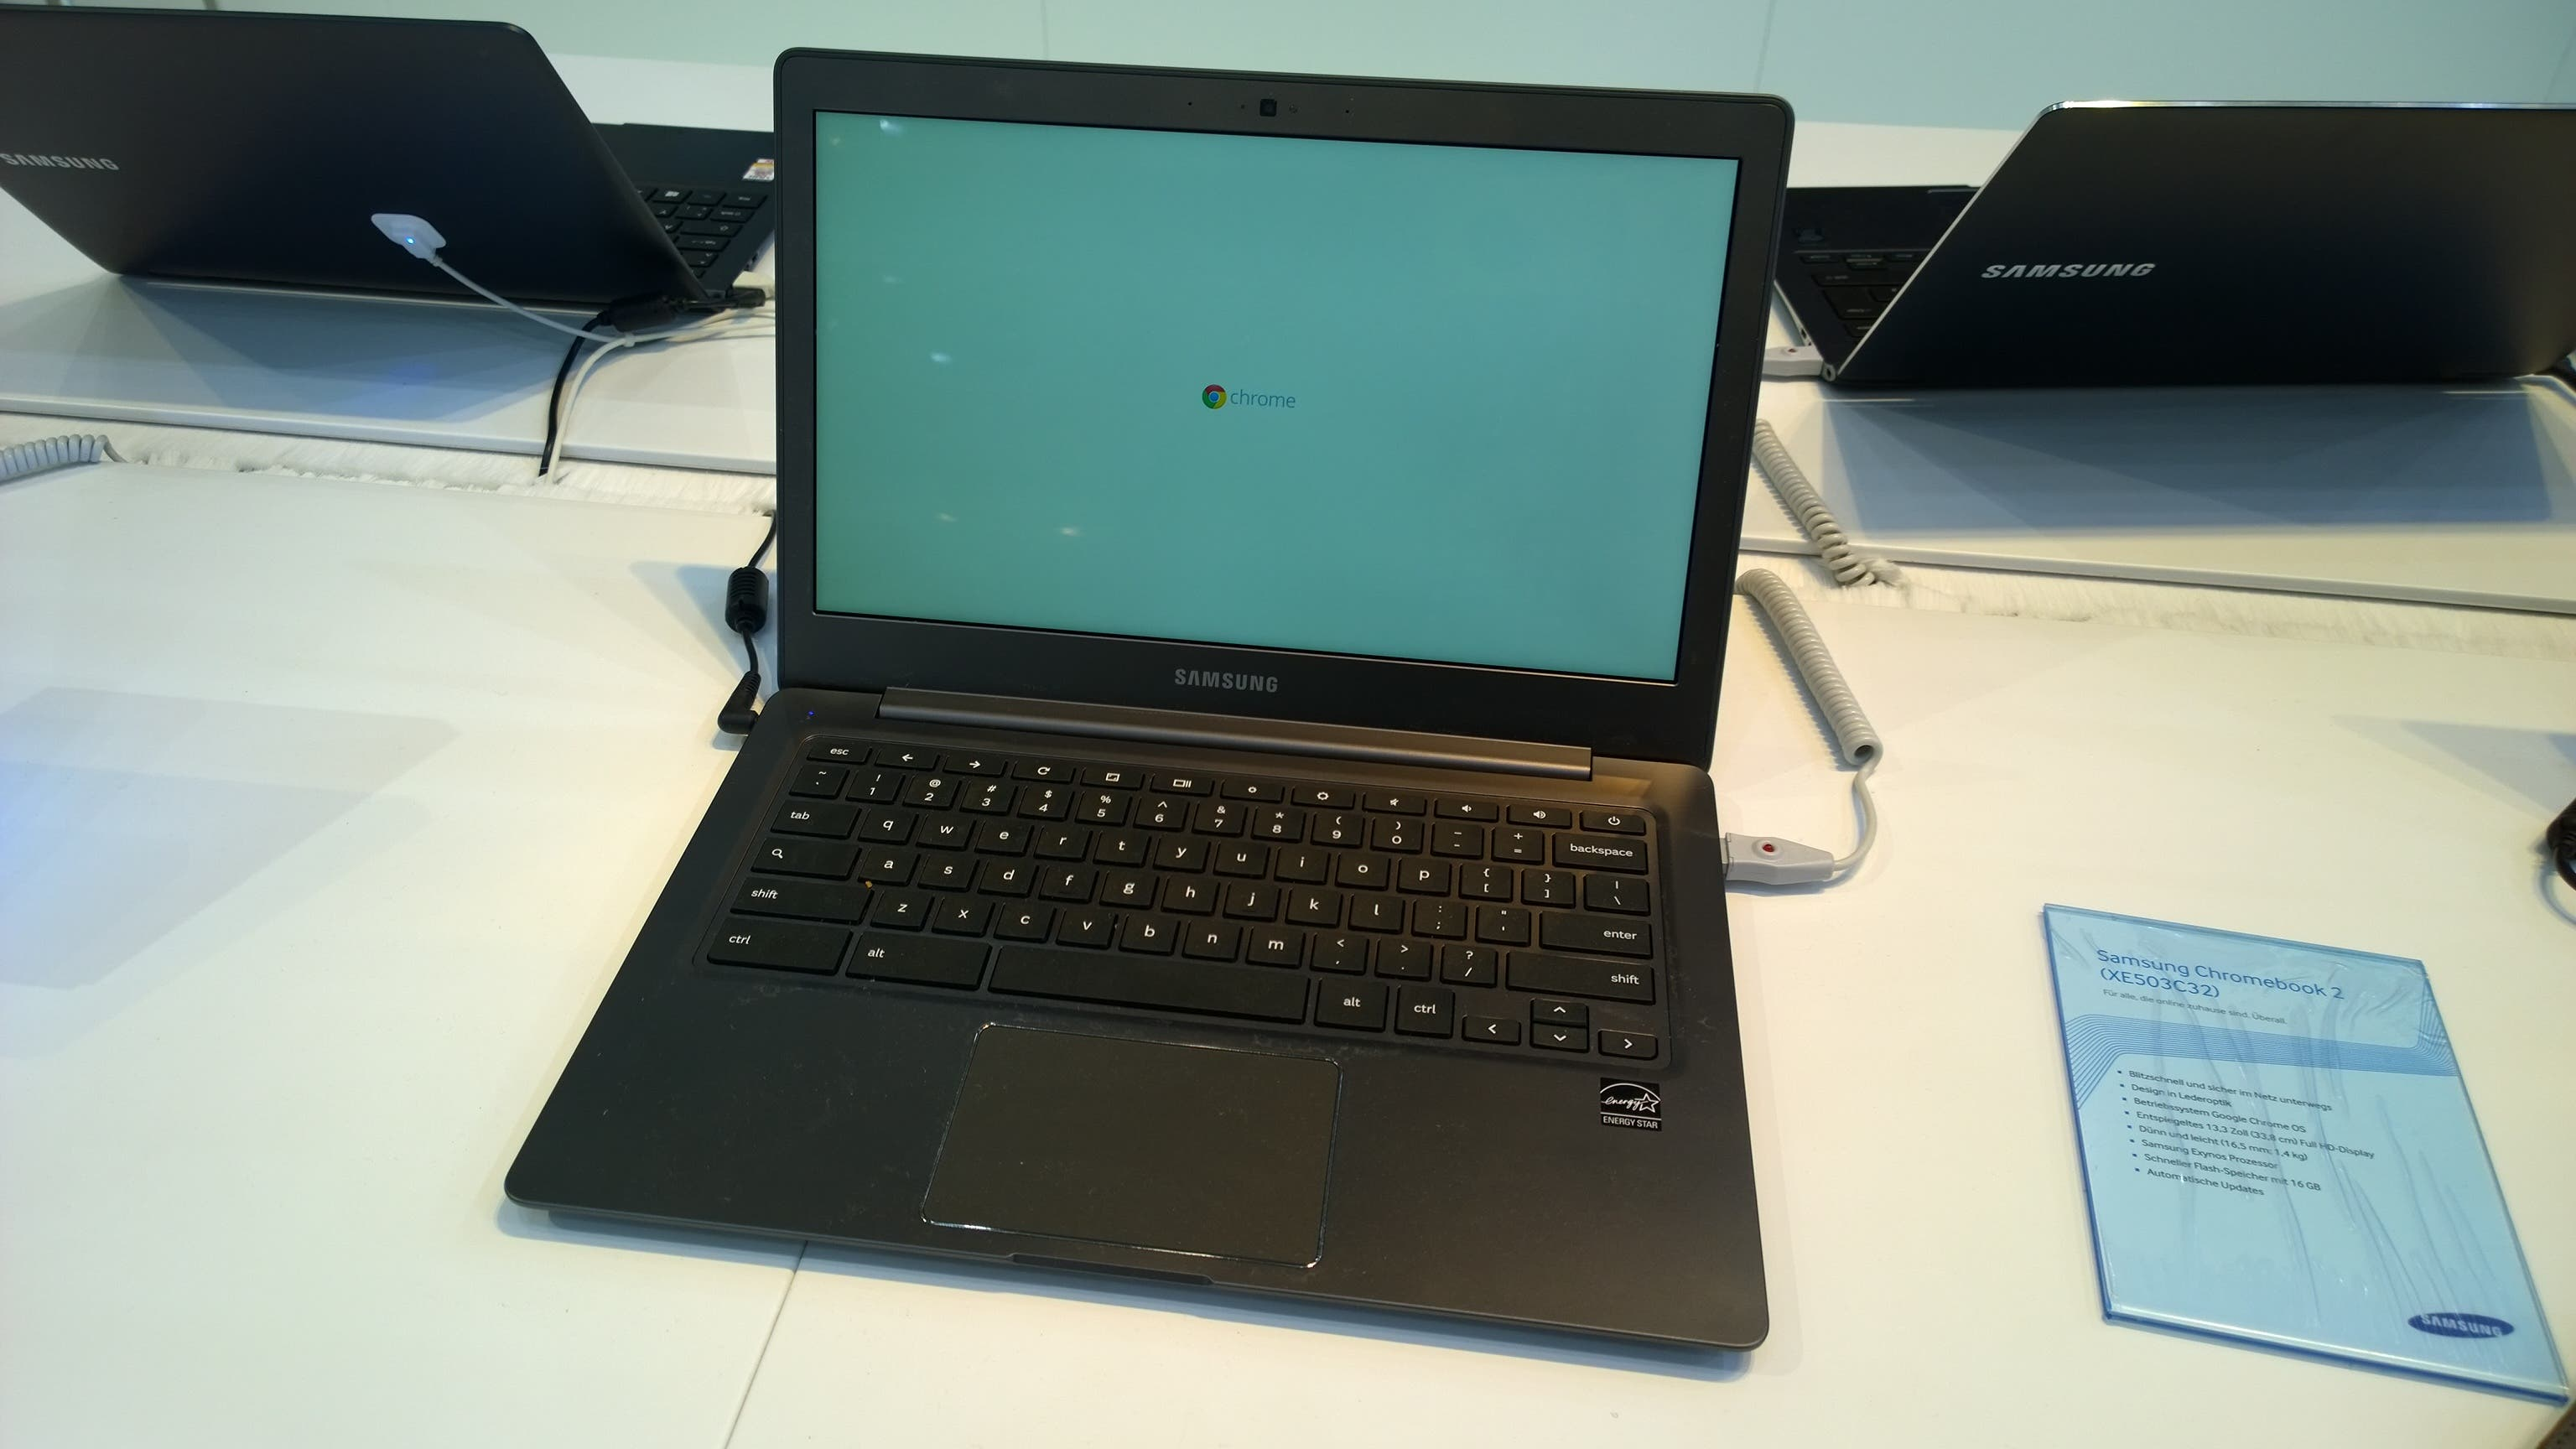 CeBIT 2014 – Samsung Chromebook 2 13.3-inch im Hands On [Video]